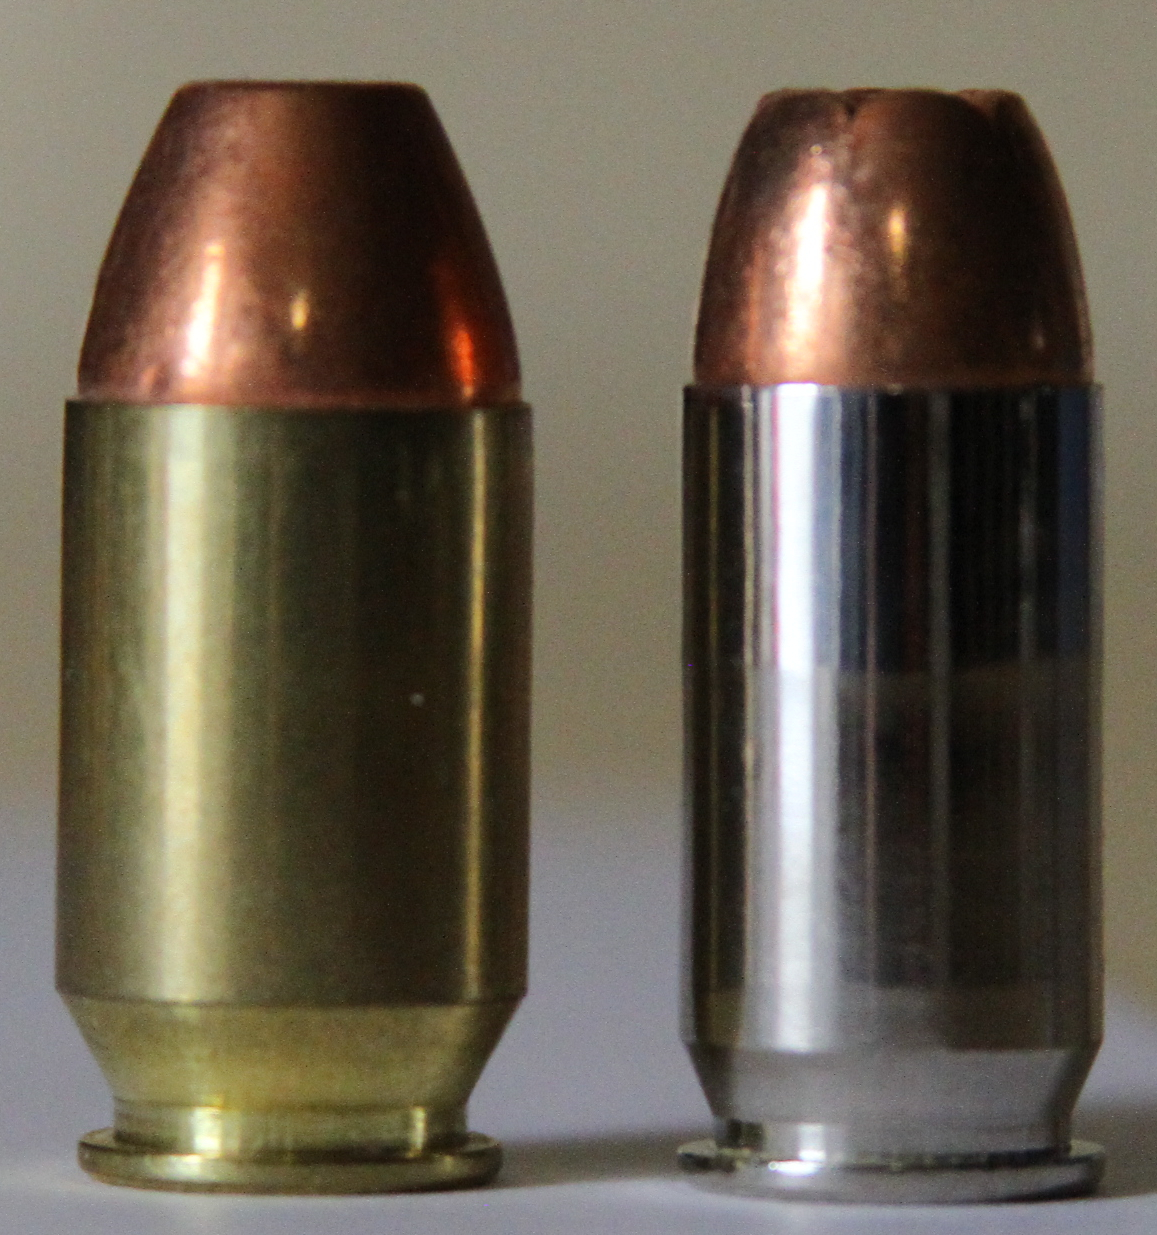 .50GI .45ACP pistol cartridge